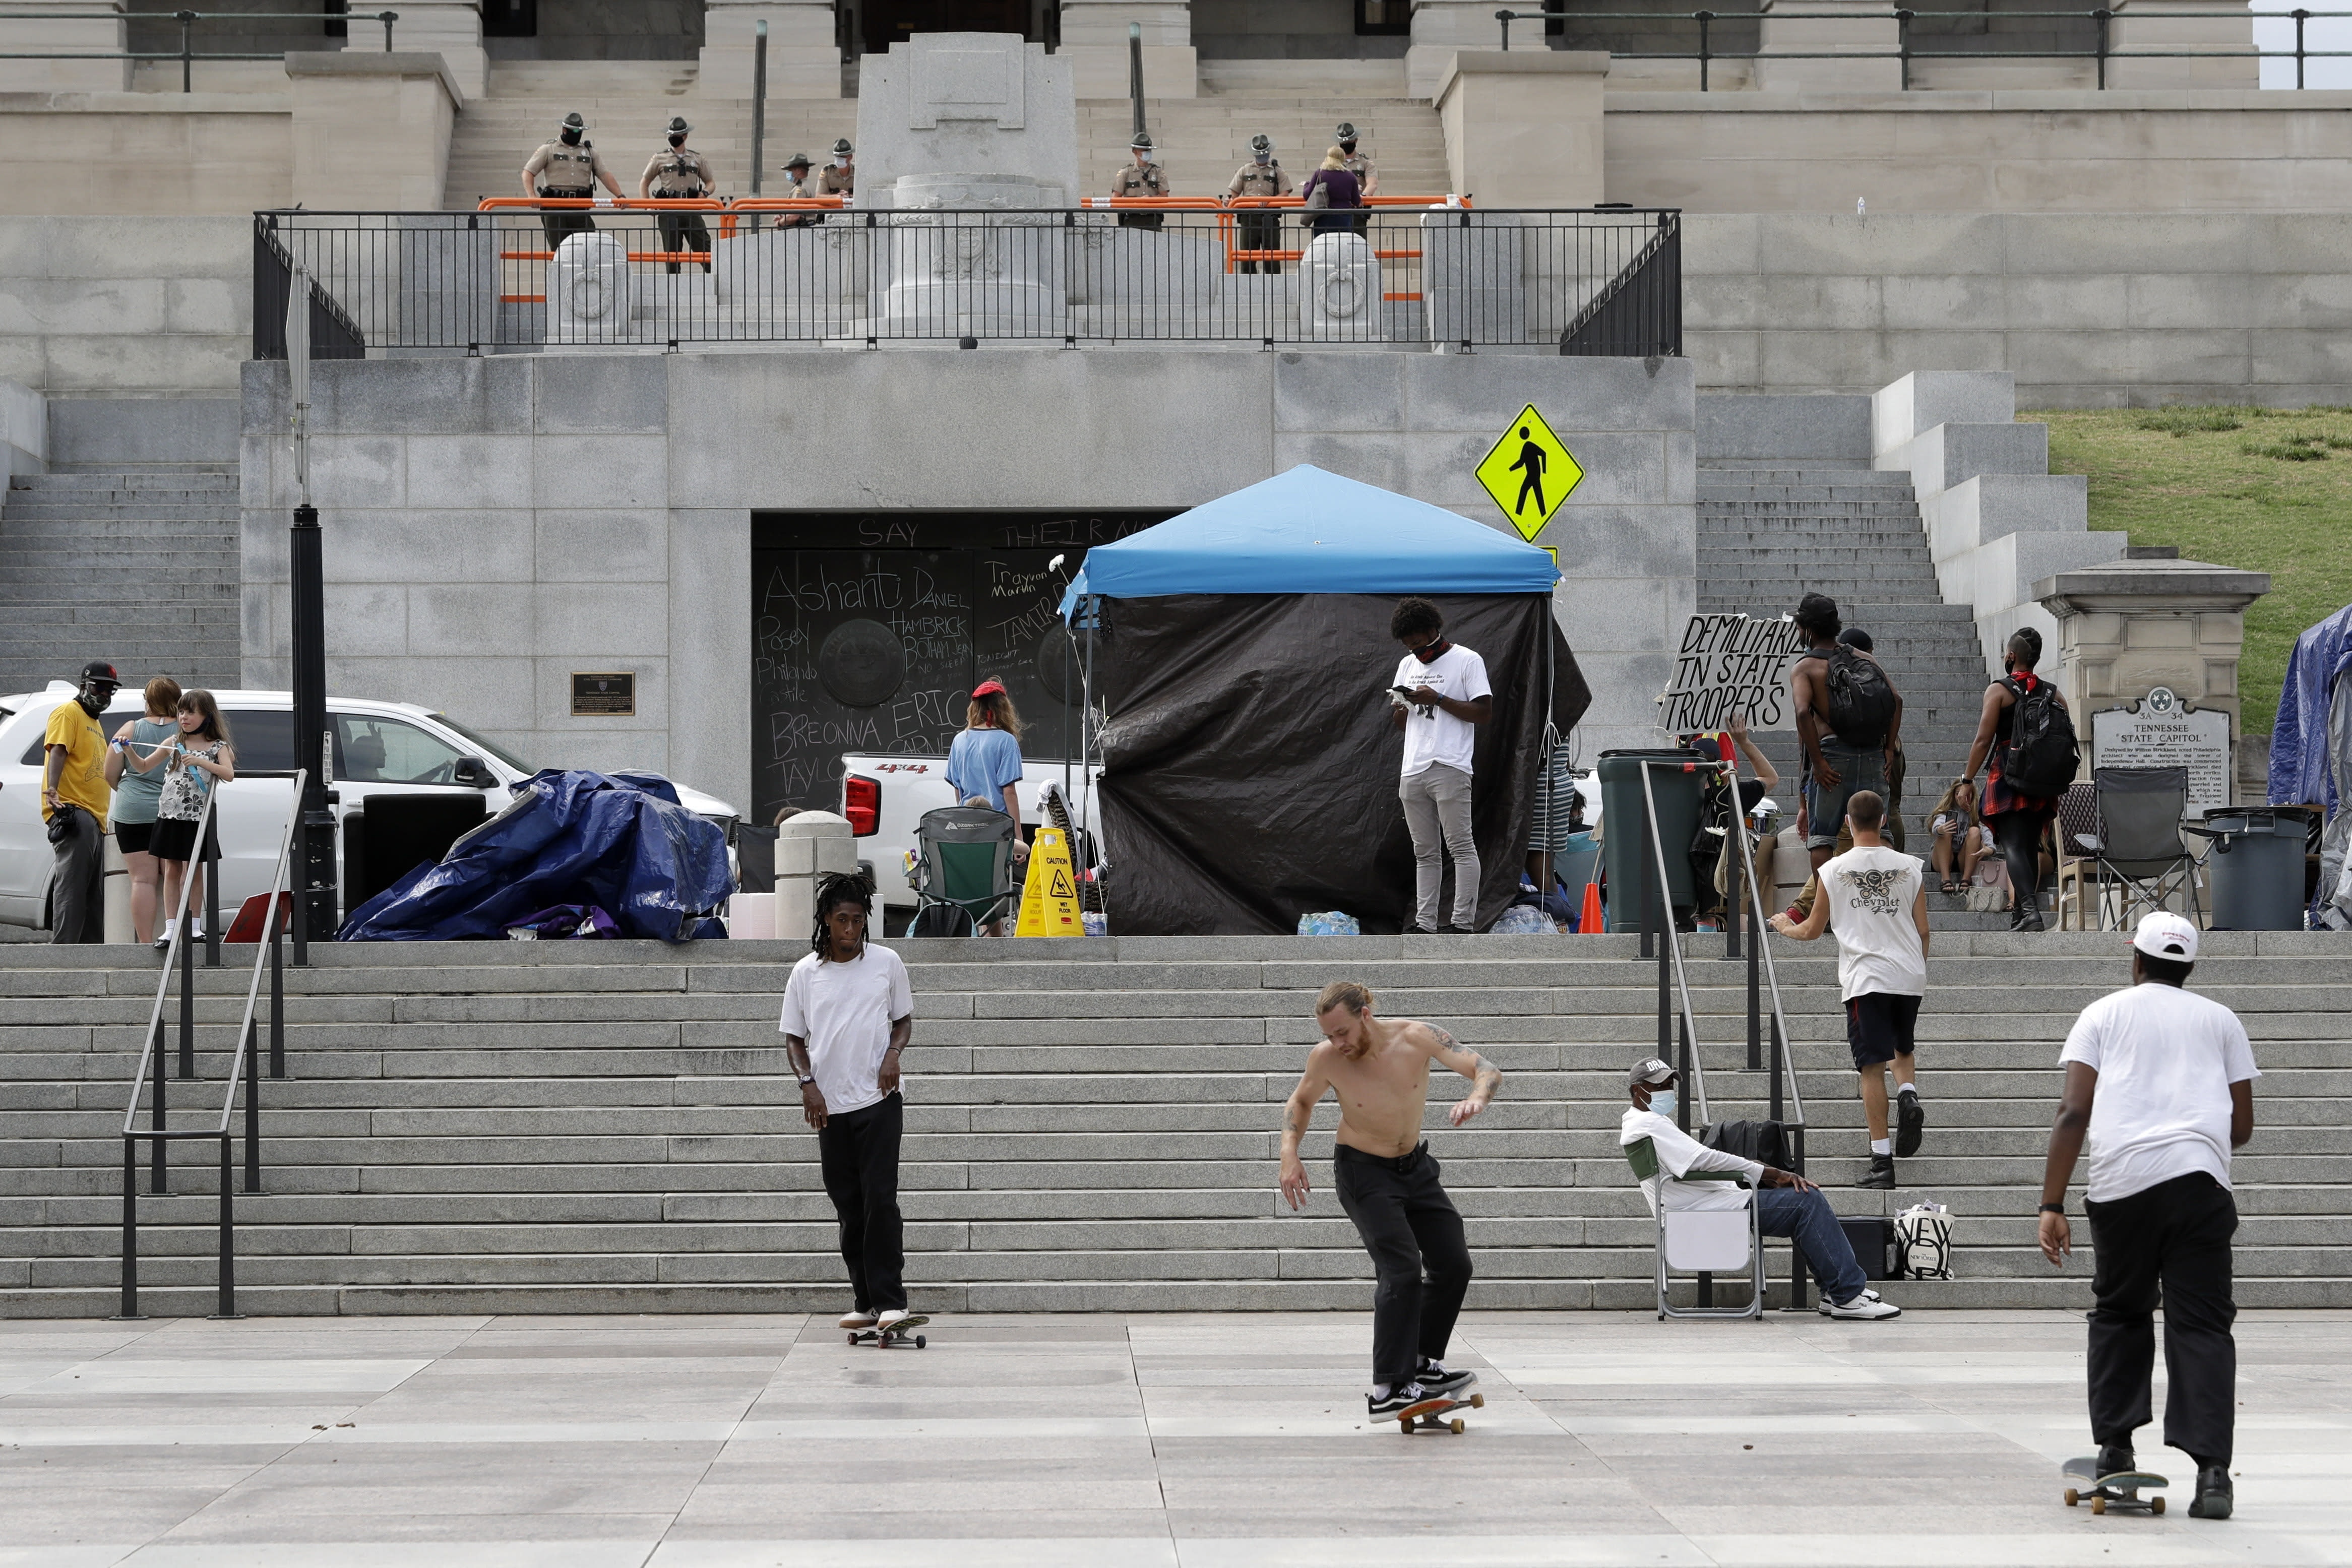 Demonstrators protest across the street from the Capitol as state troopers watch Wednesday, July 1, 2020, in Nashville, Tenn. Tennessee's newest law, a wide range of crimes commonly associated with protests will see a big bump in penalties and fines, but the most contentious element focuses on escalated penalties for illegal camping. Violators will now face a Class E felony, punishable by up to six years in prison. (AP Photo/Mark Humphrey)